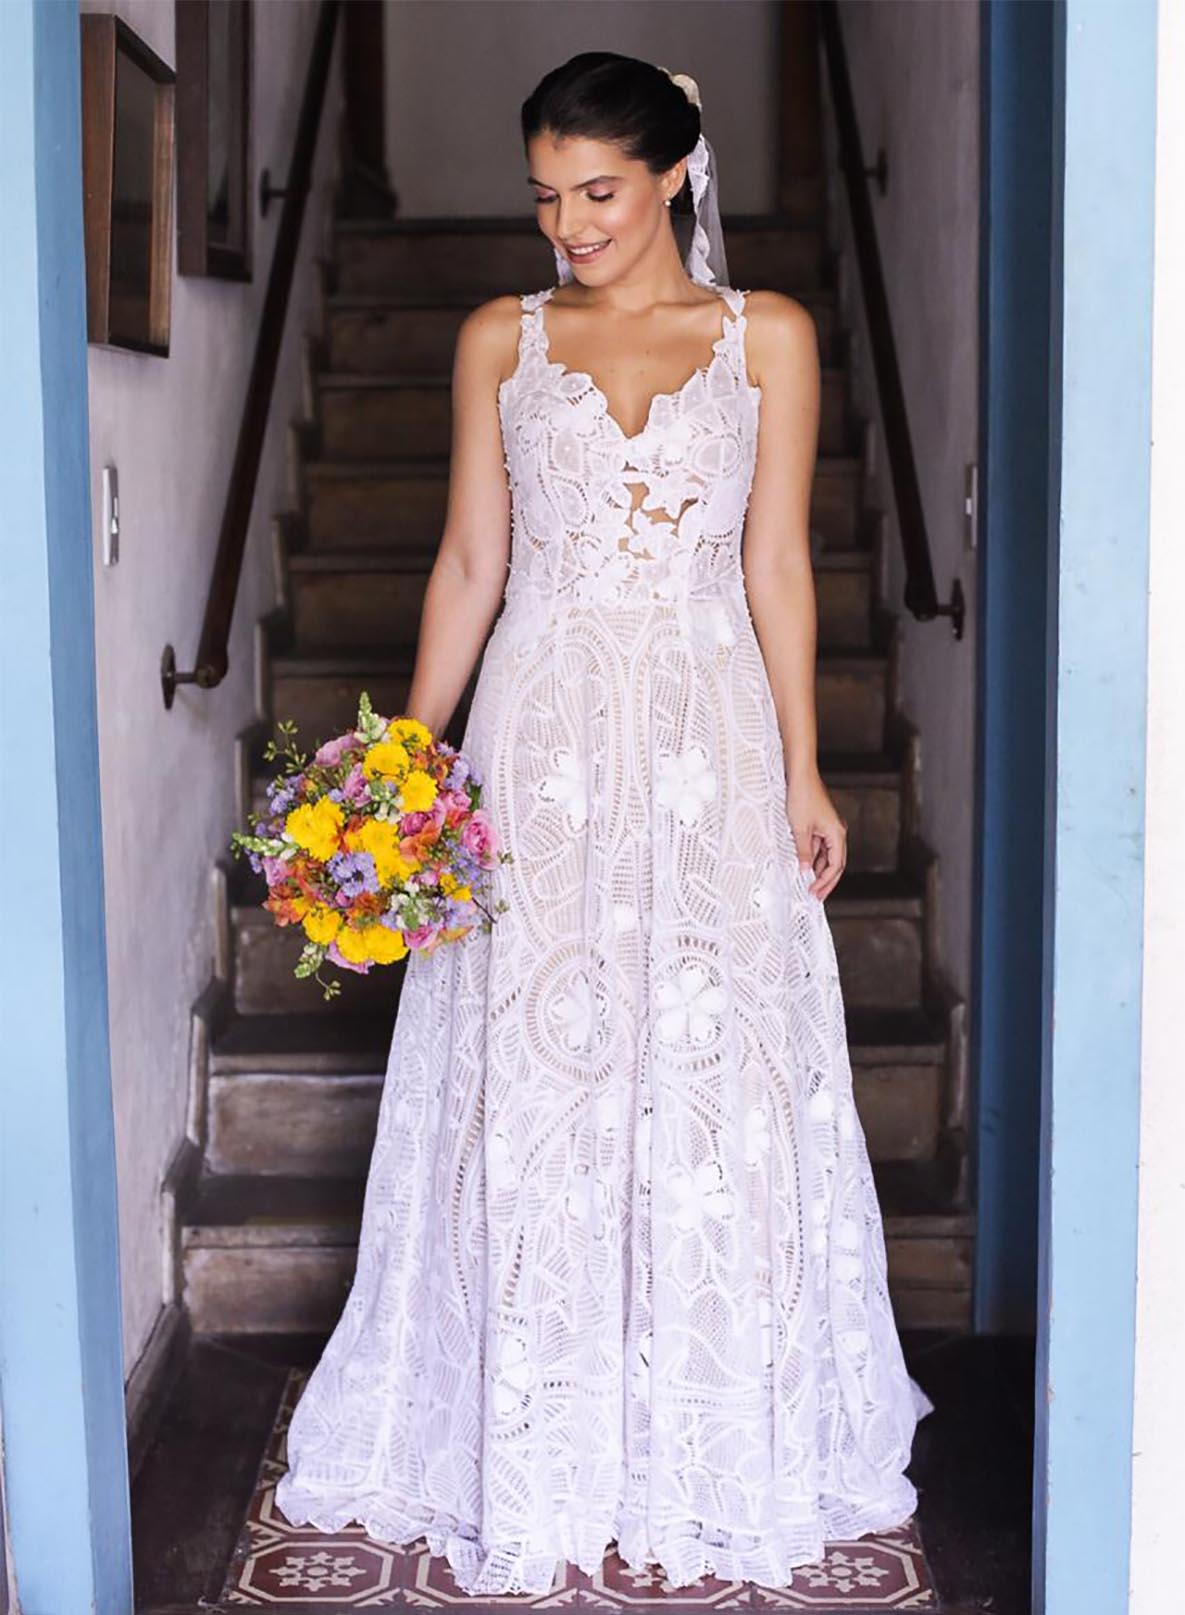 Handmade Lace Wedding Dress